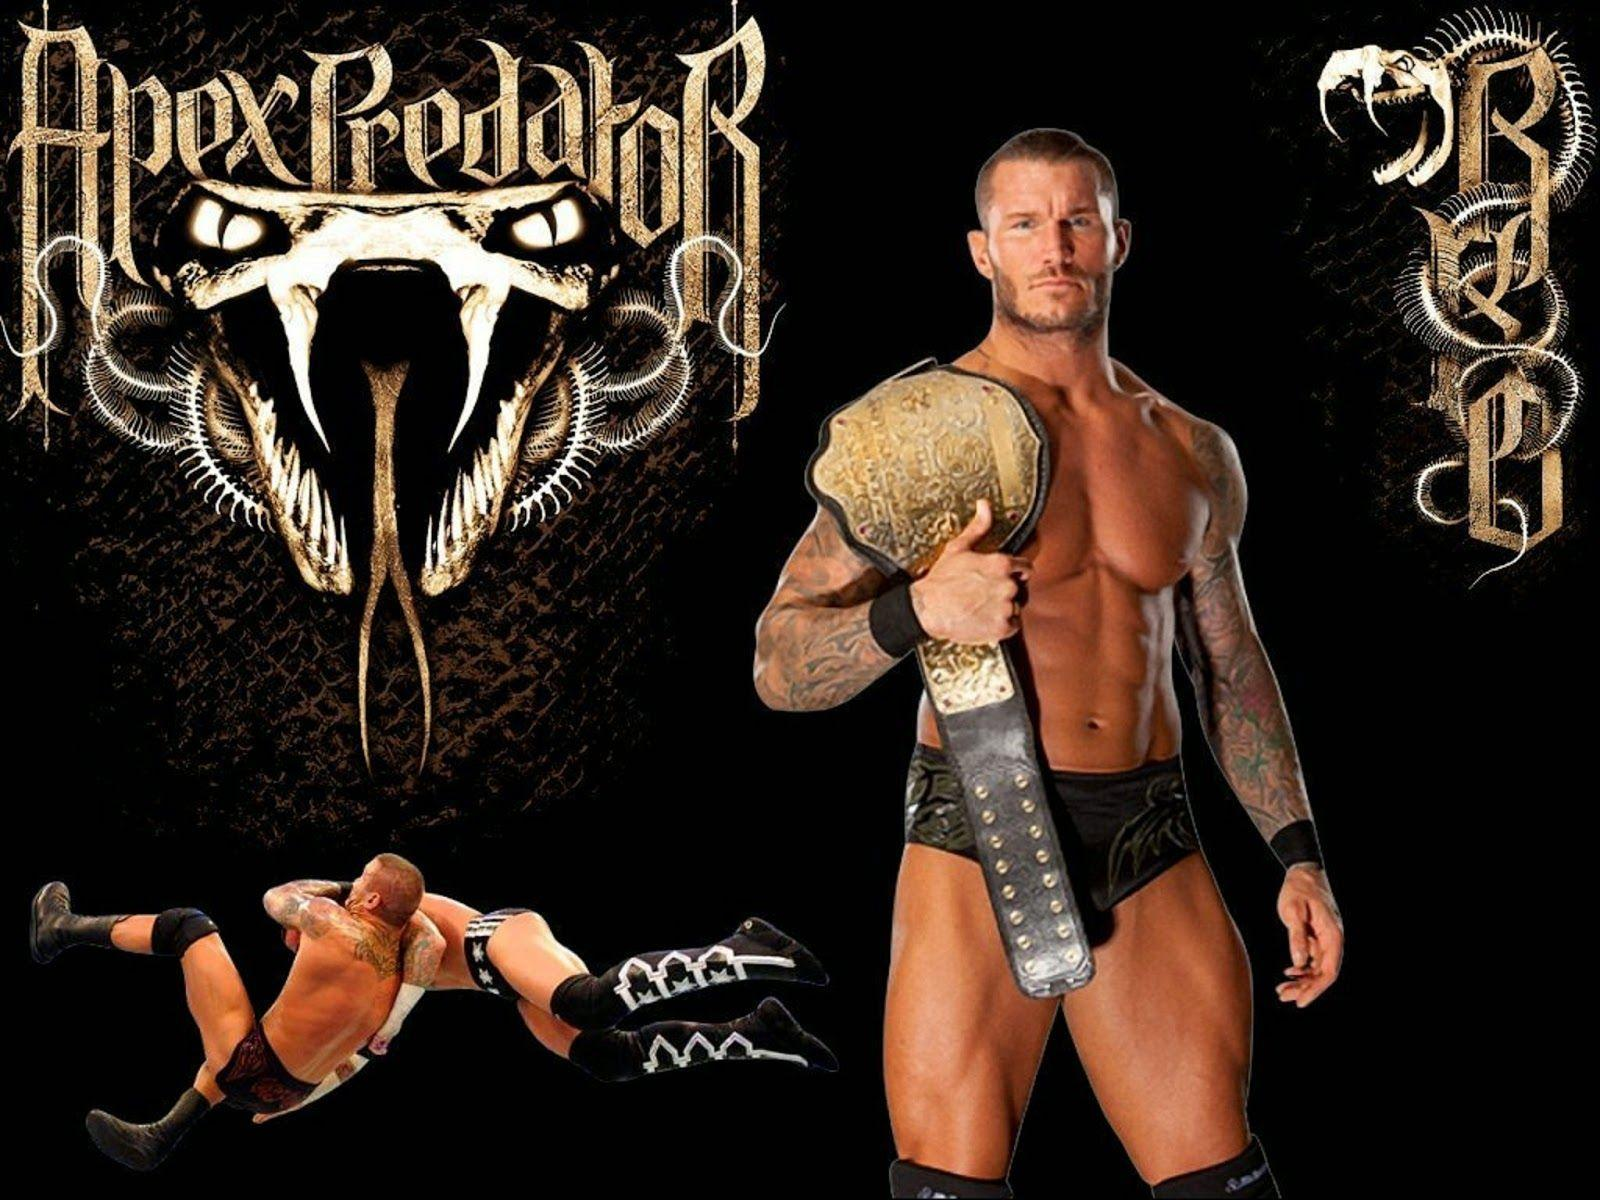 Randy Orton Wallpapers Free Download | HD Wallpapers, Backgrounds ...